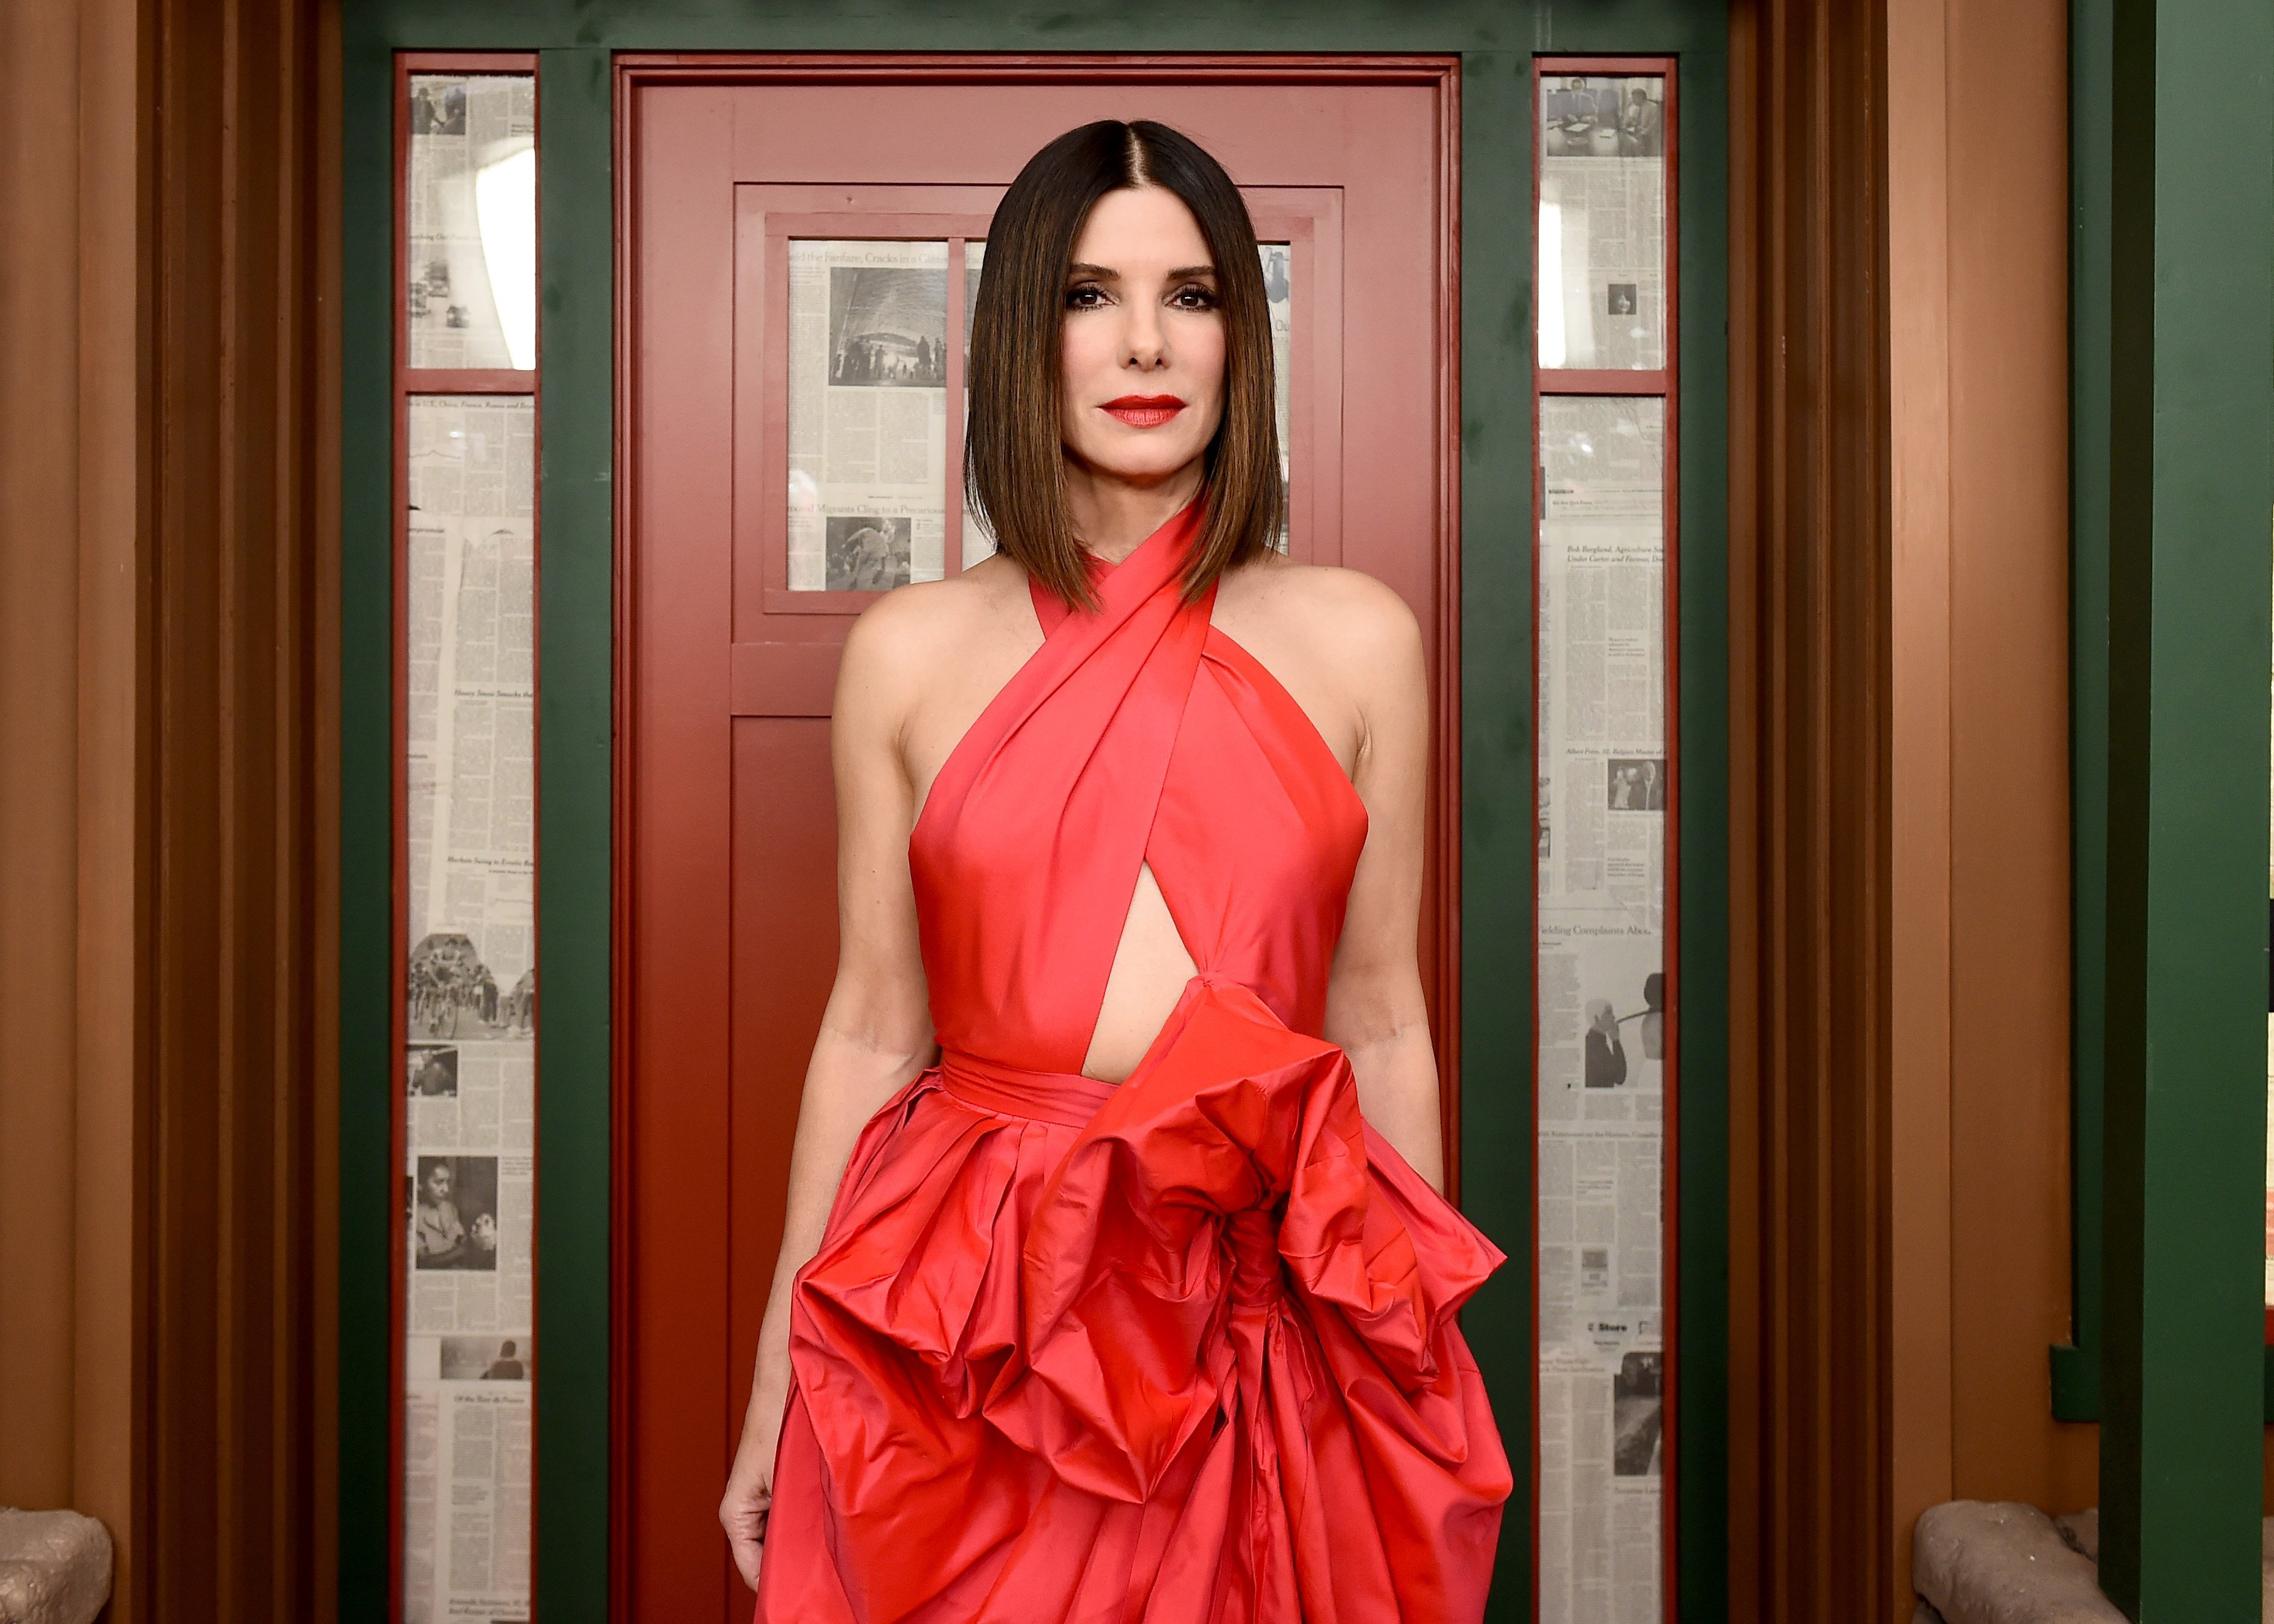 """Sandra Bullock attends the New York Special Screening Of The Netflix Film """"BIRD BOX"""" at Alice Tully Hall on December 17, 2018, in New York City. 